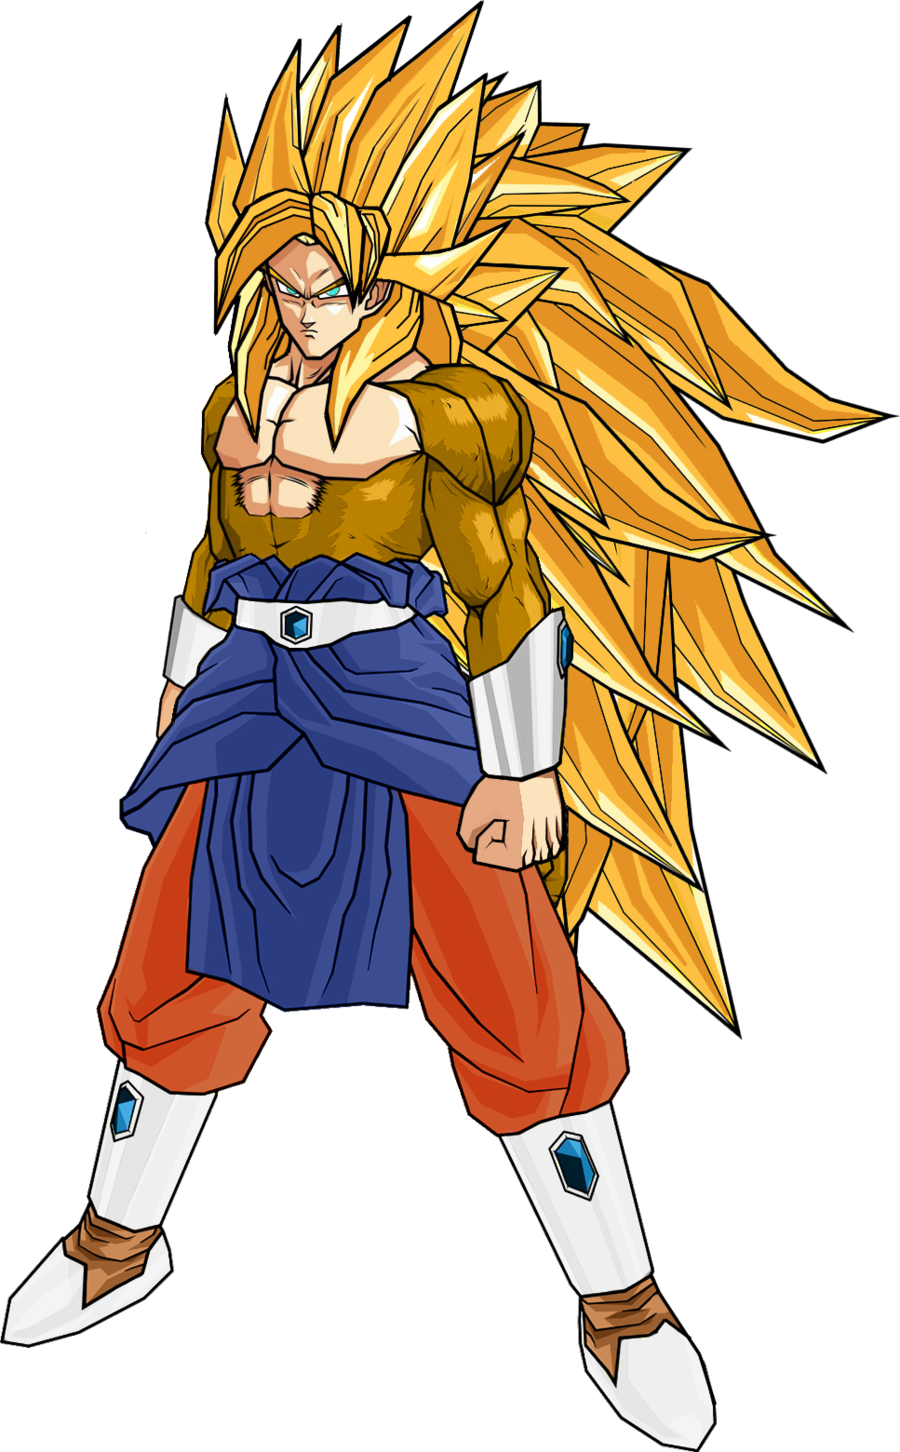 Supreme super saiyan ultra dragon ball wiki fandom - Goku 5 super saiyan ...